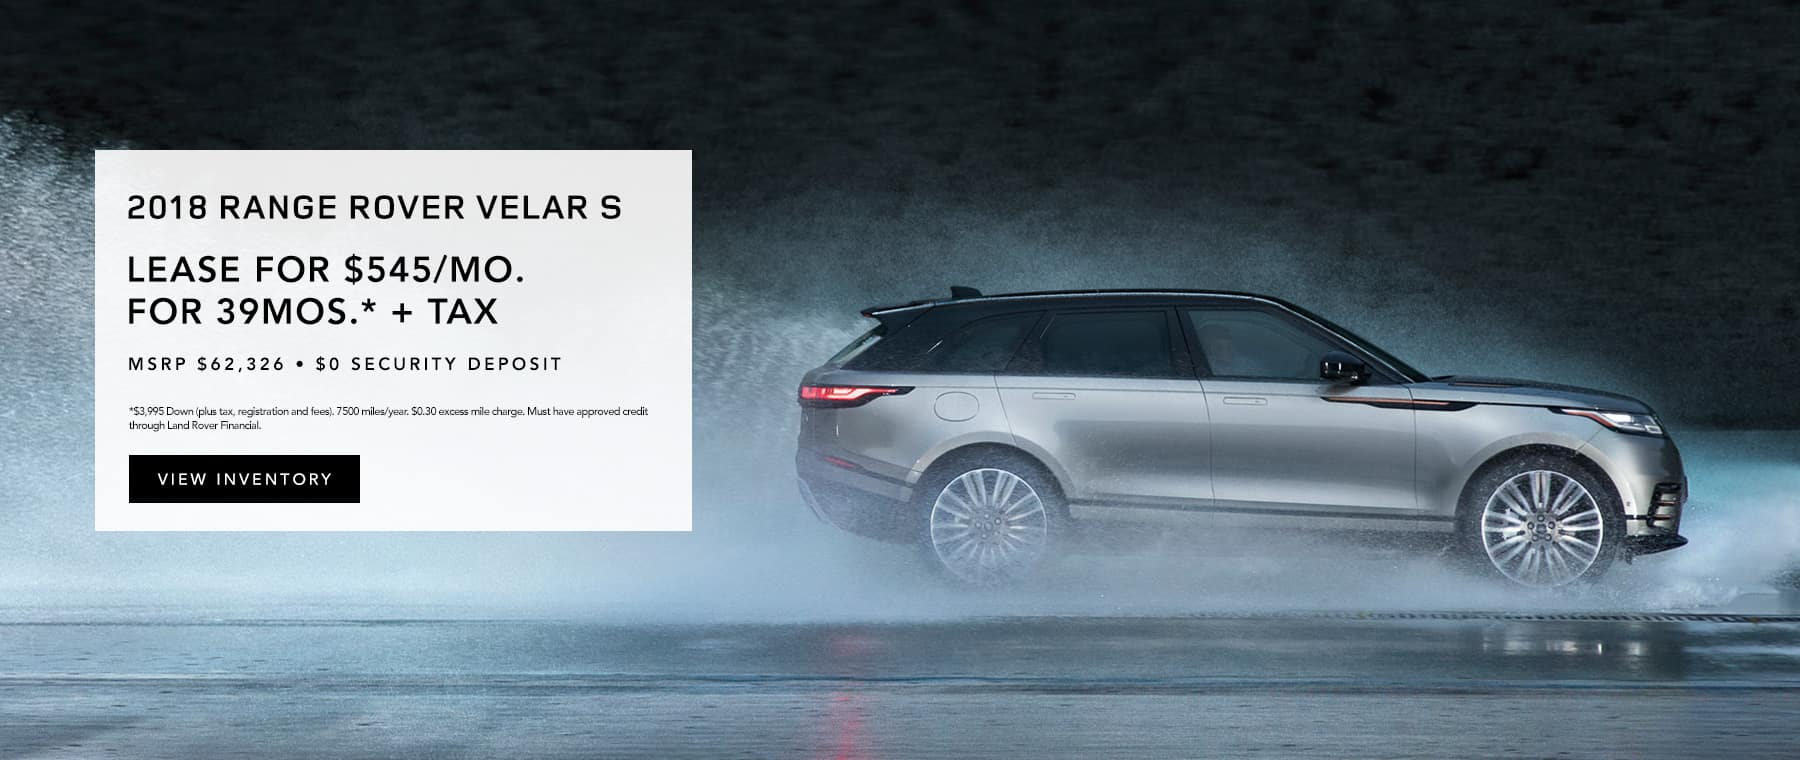 2018 Range Rover Velar S Lease Offer